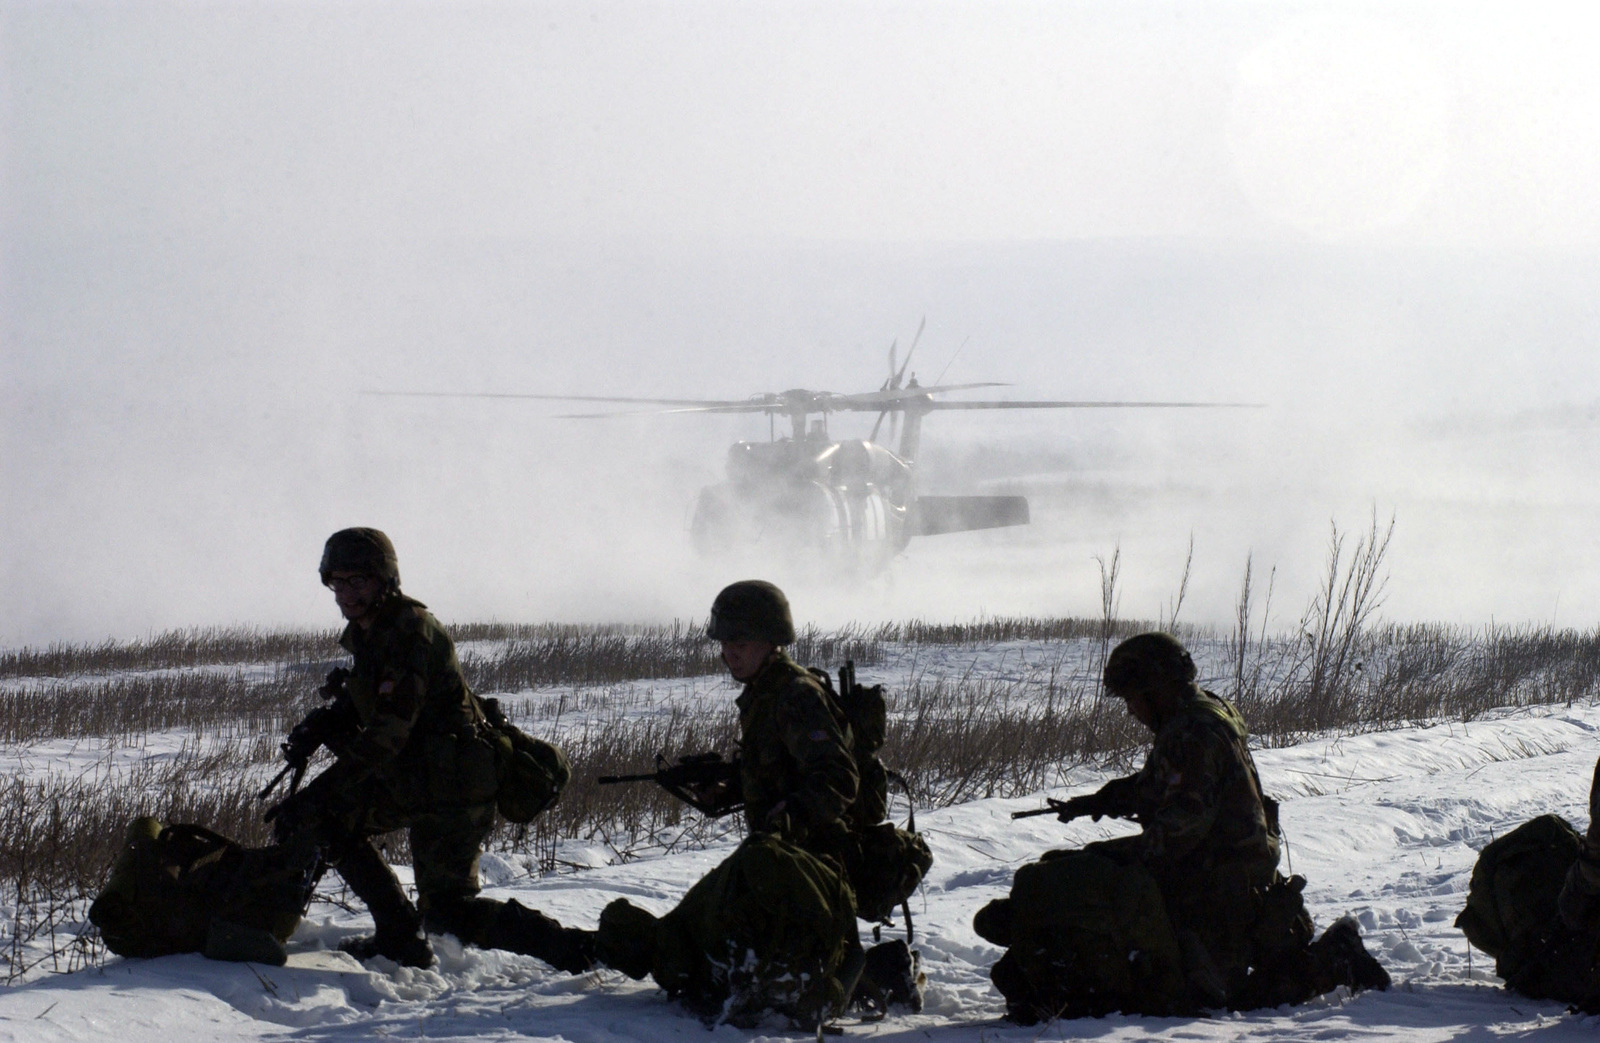 Soldiers wait on the snow covered ground before boarding UH